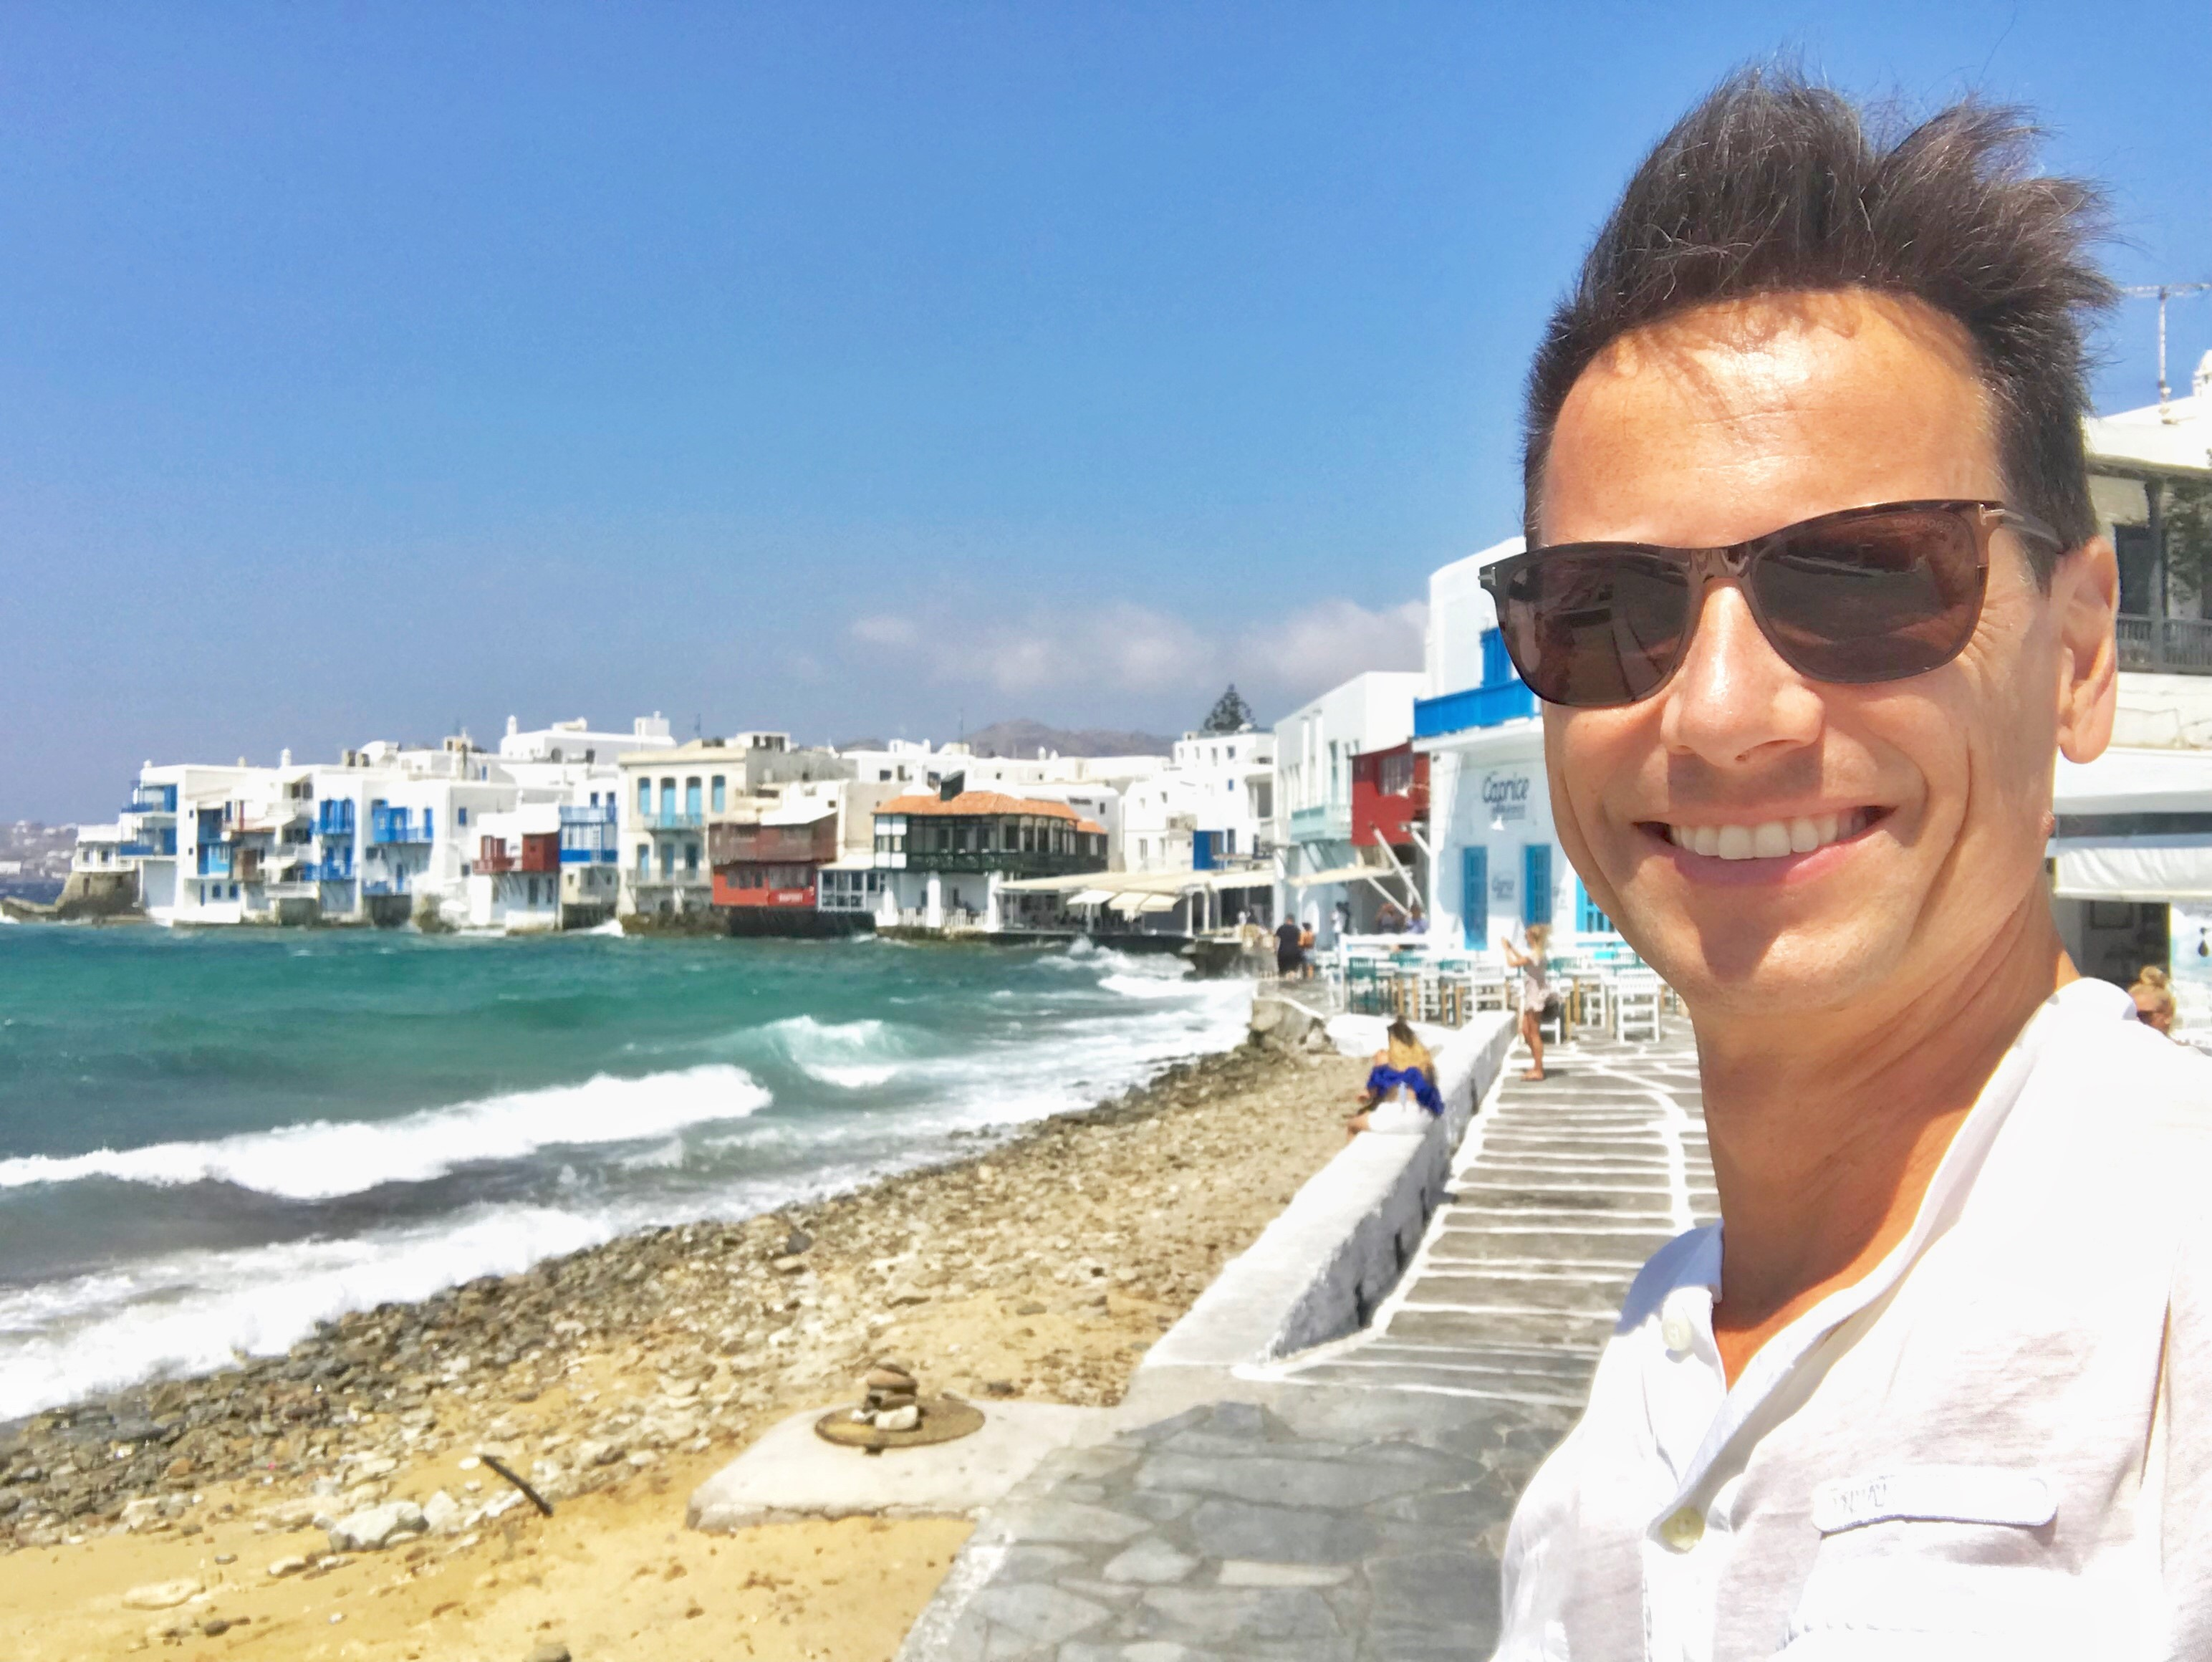 Christian in Mykonos